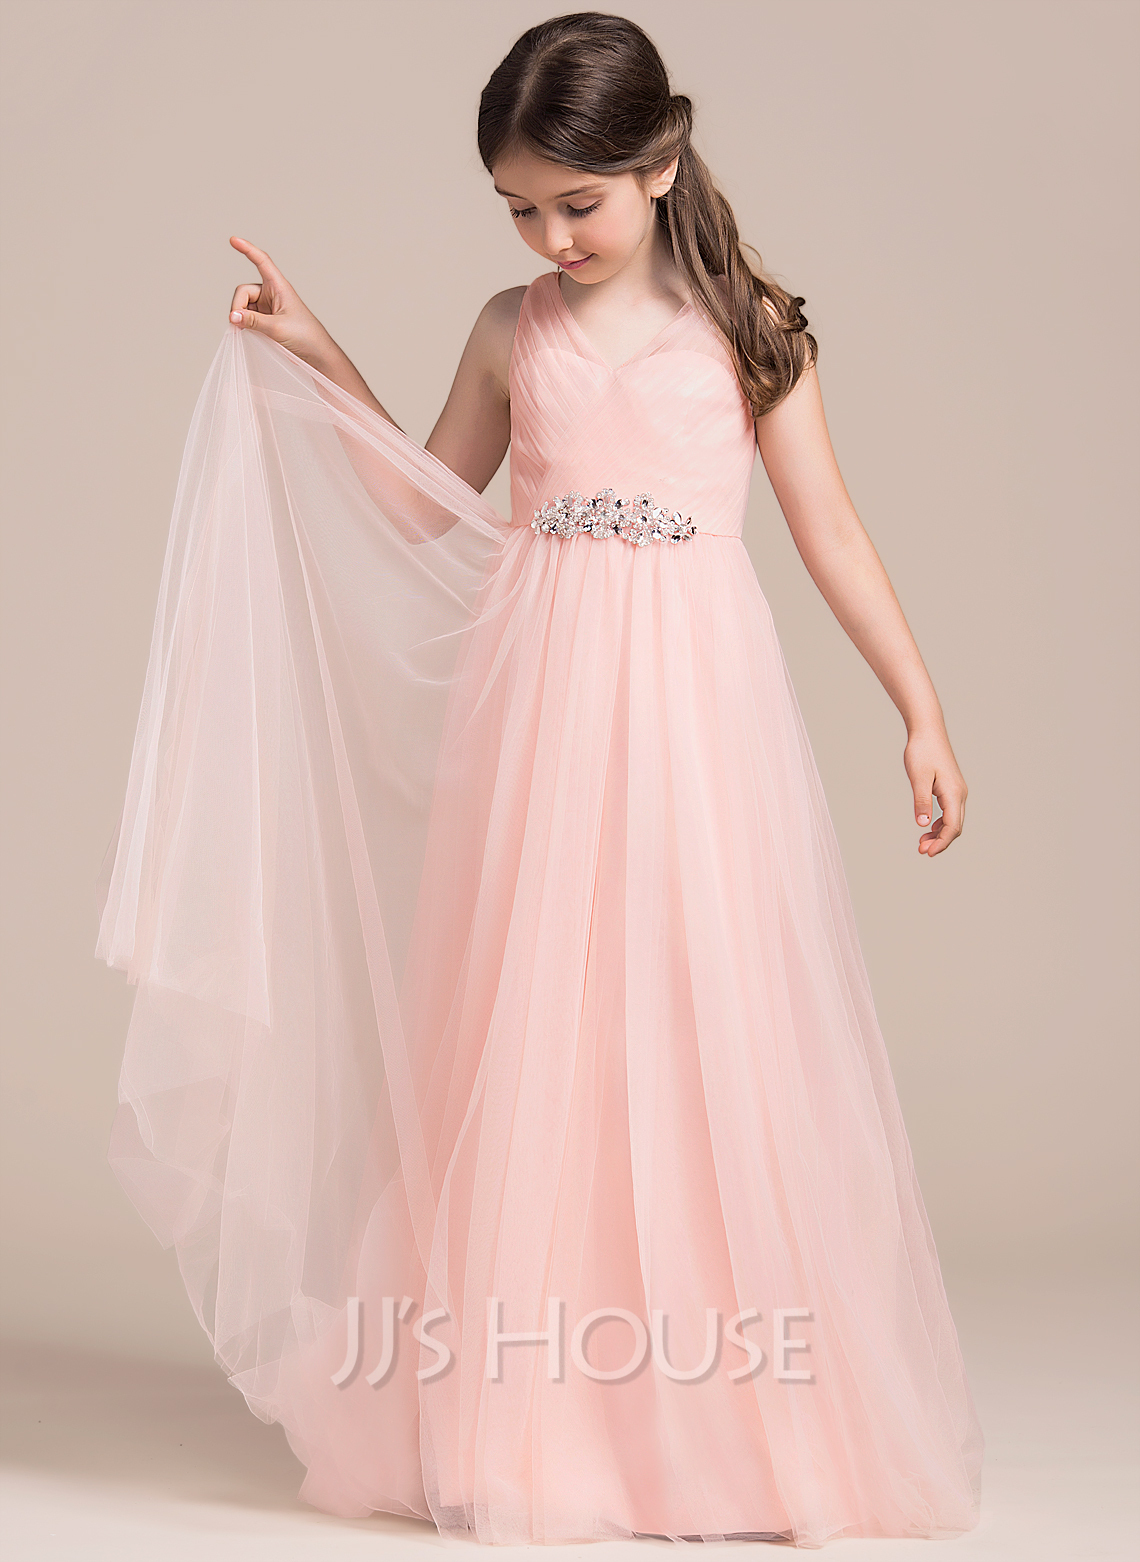 59bb49c46 A-Line/Princess Floor-length Flower Girl Dress - Tulle Sleeveless V-neck  With Ruffles/Beading/Sequins #113815